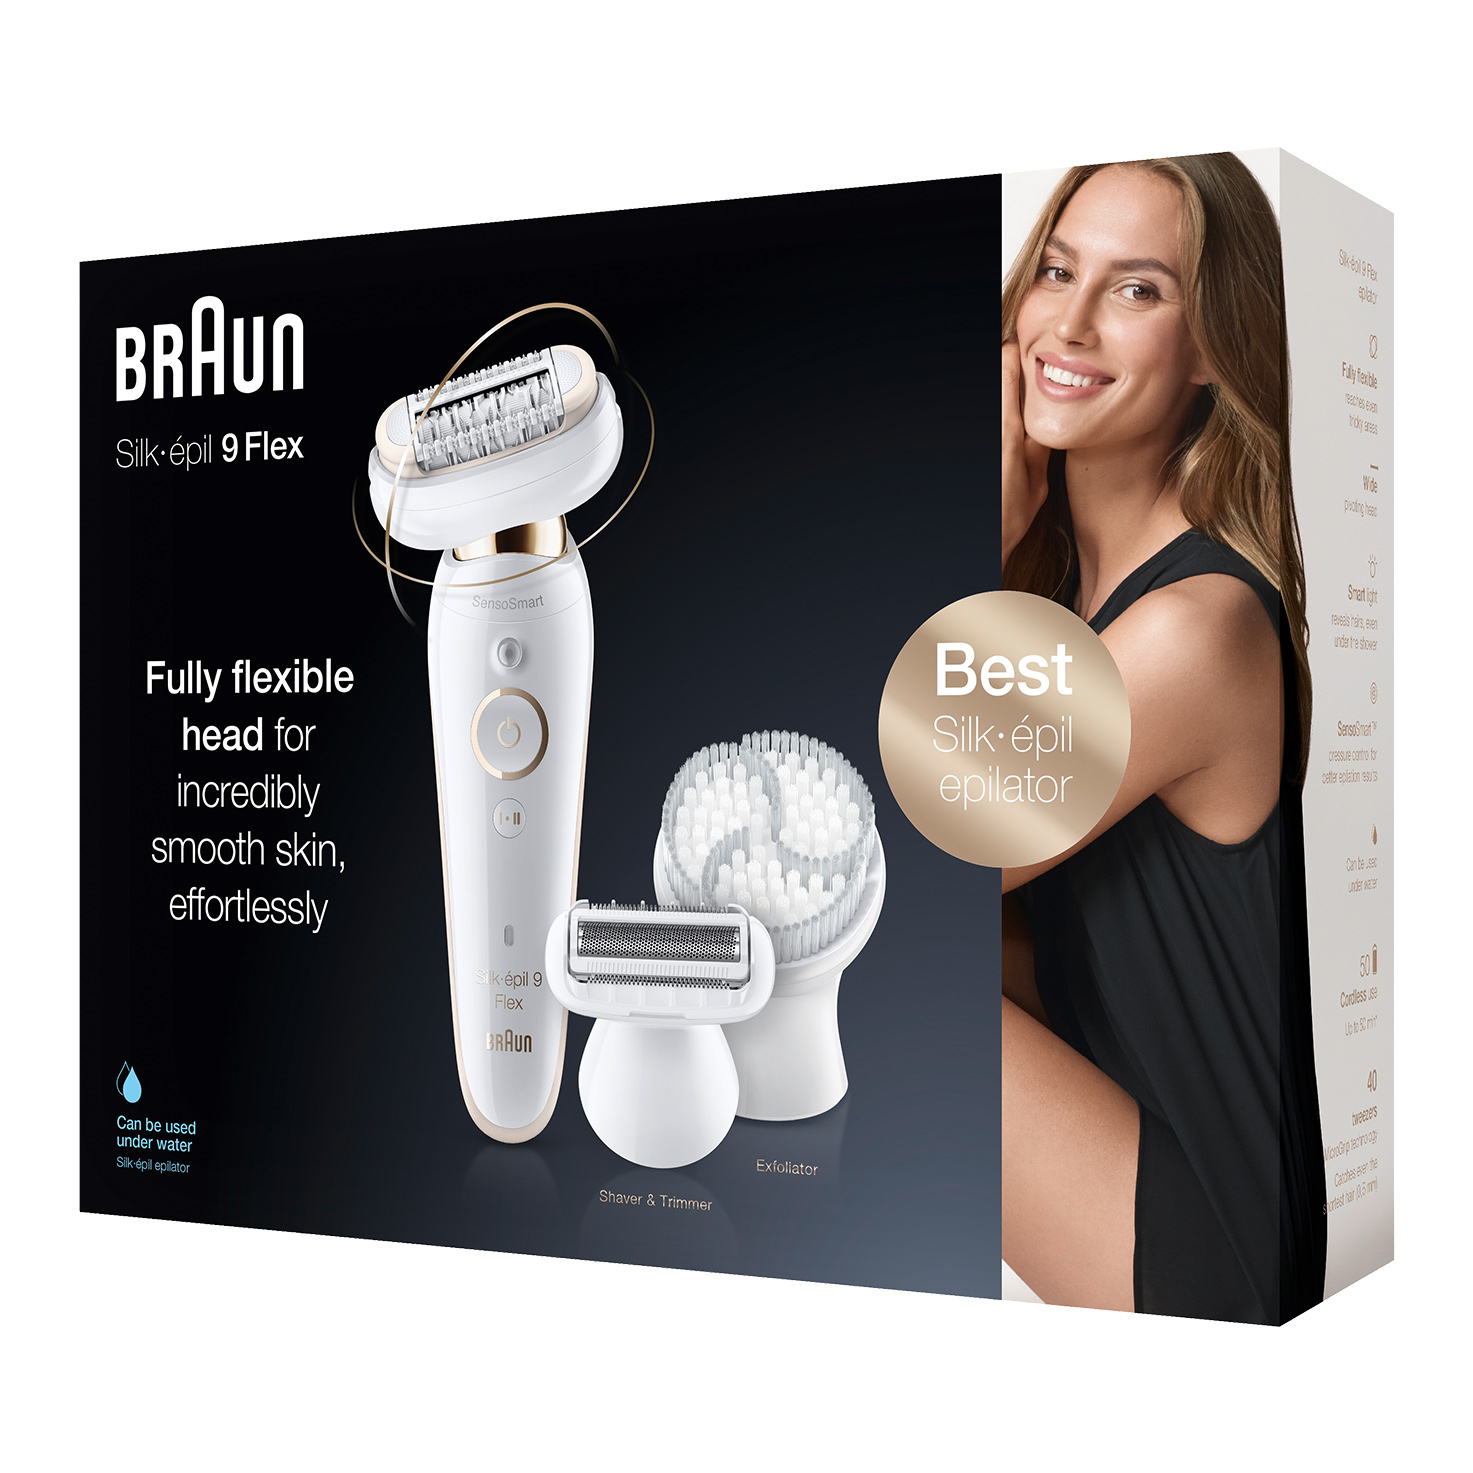 Silk-épil 9 Flex 9-030 epilator